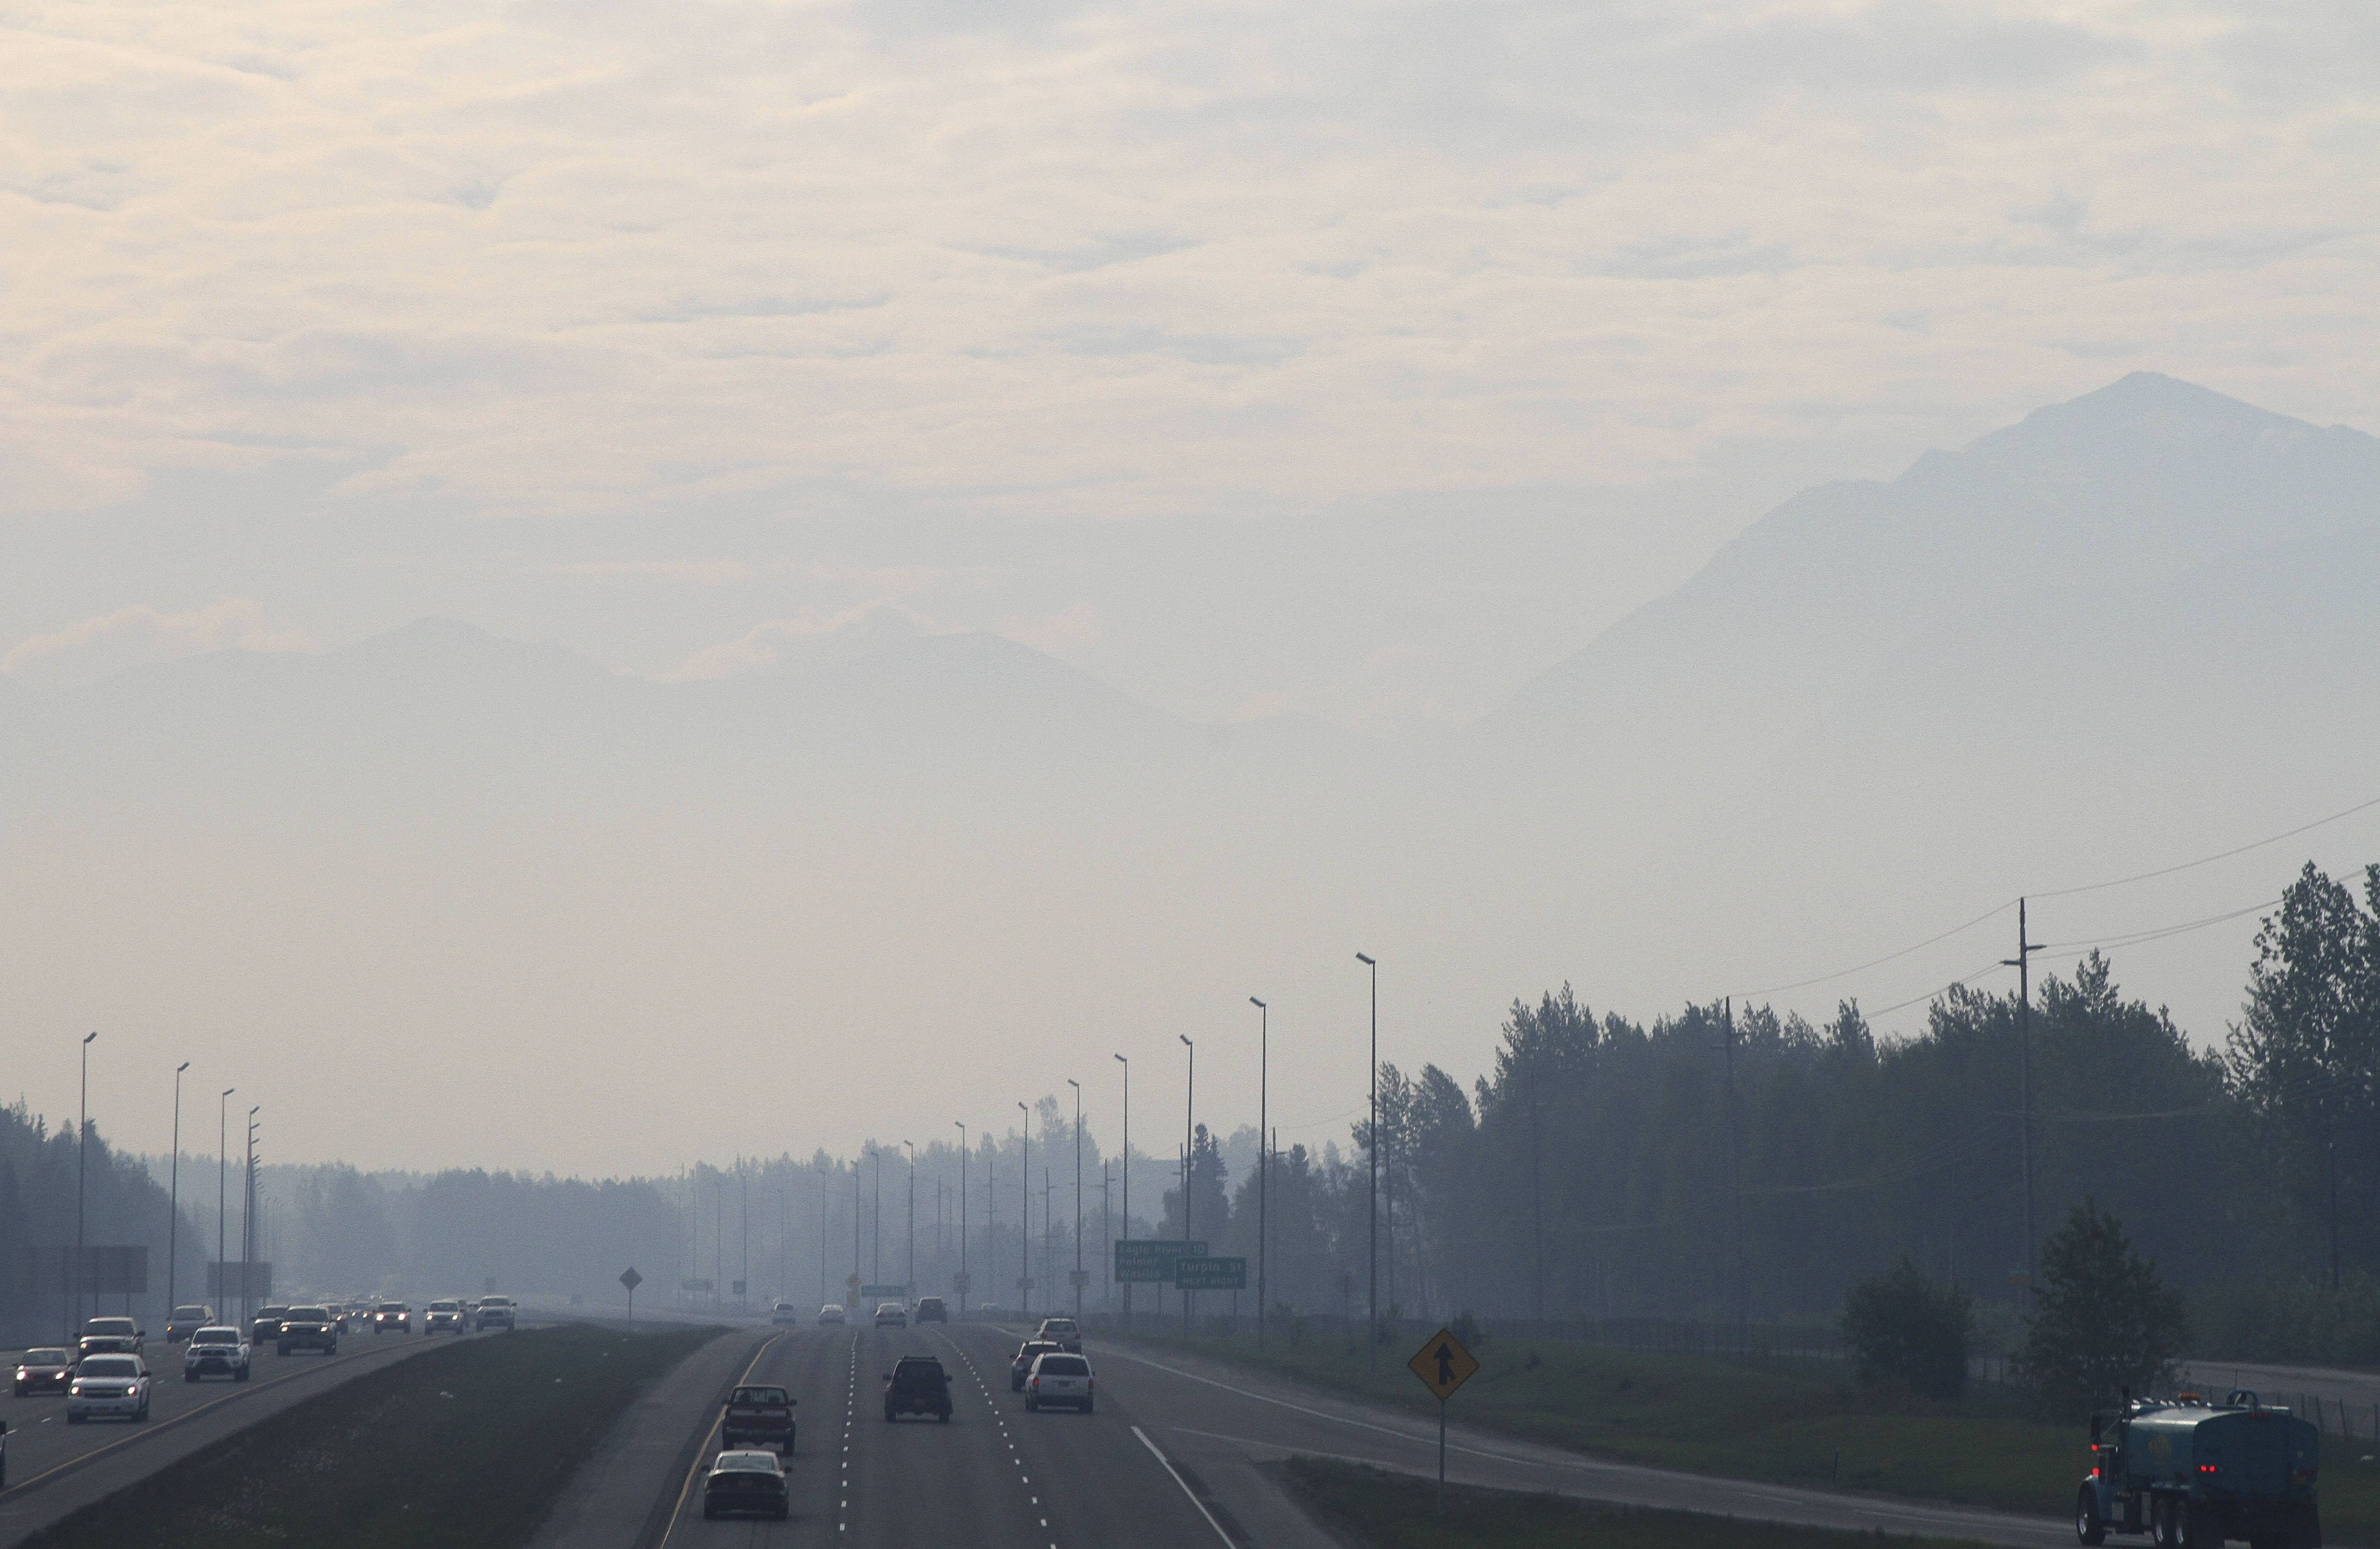 Haze from smoke covers a highway in Anchorage, Alaska, Thursday. Residents in Anchorage woke up Thursday to a smokey haze and the smell of a campfire over the state's largest city. The smoke is from wildfires burning on Alaska's Kenai Peninsula.